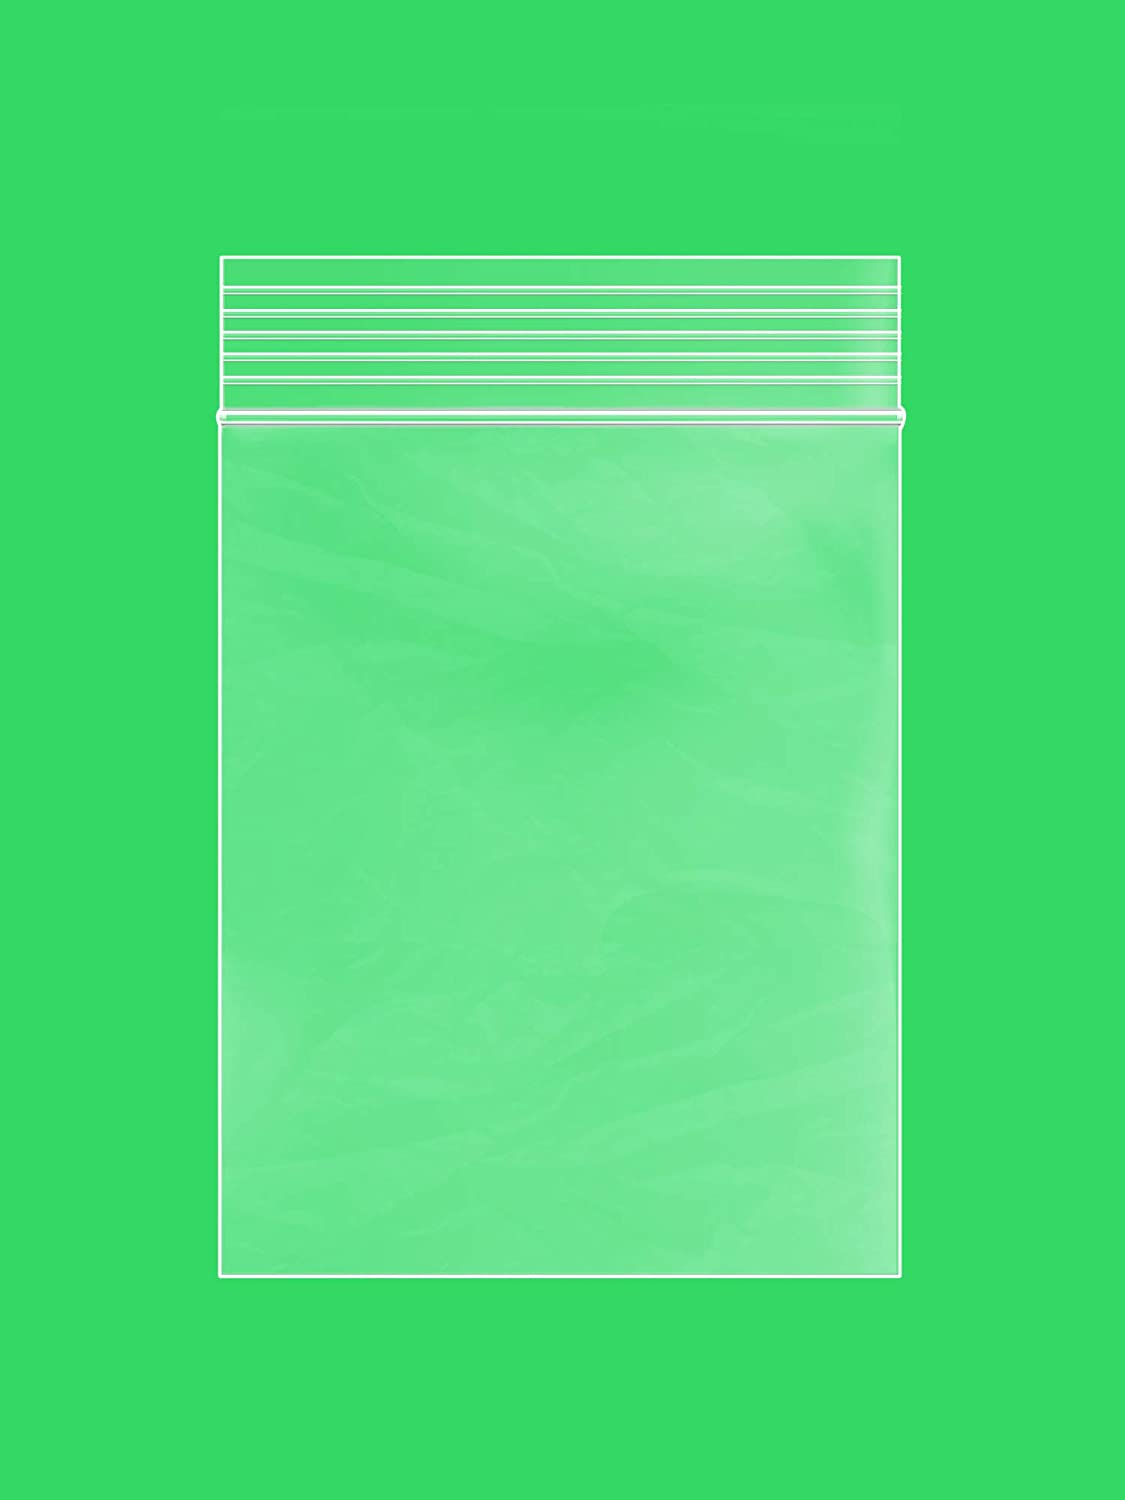 Clear Plastic Reusable ZIPLOCK Bags - Bulk GPI Pack of 100 3